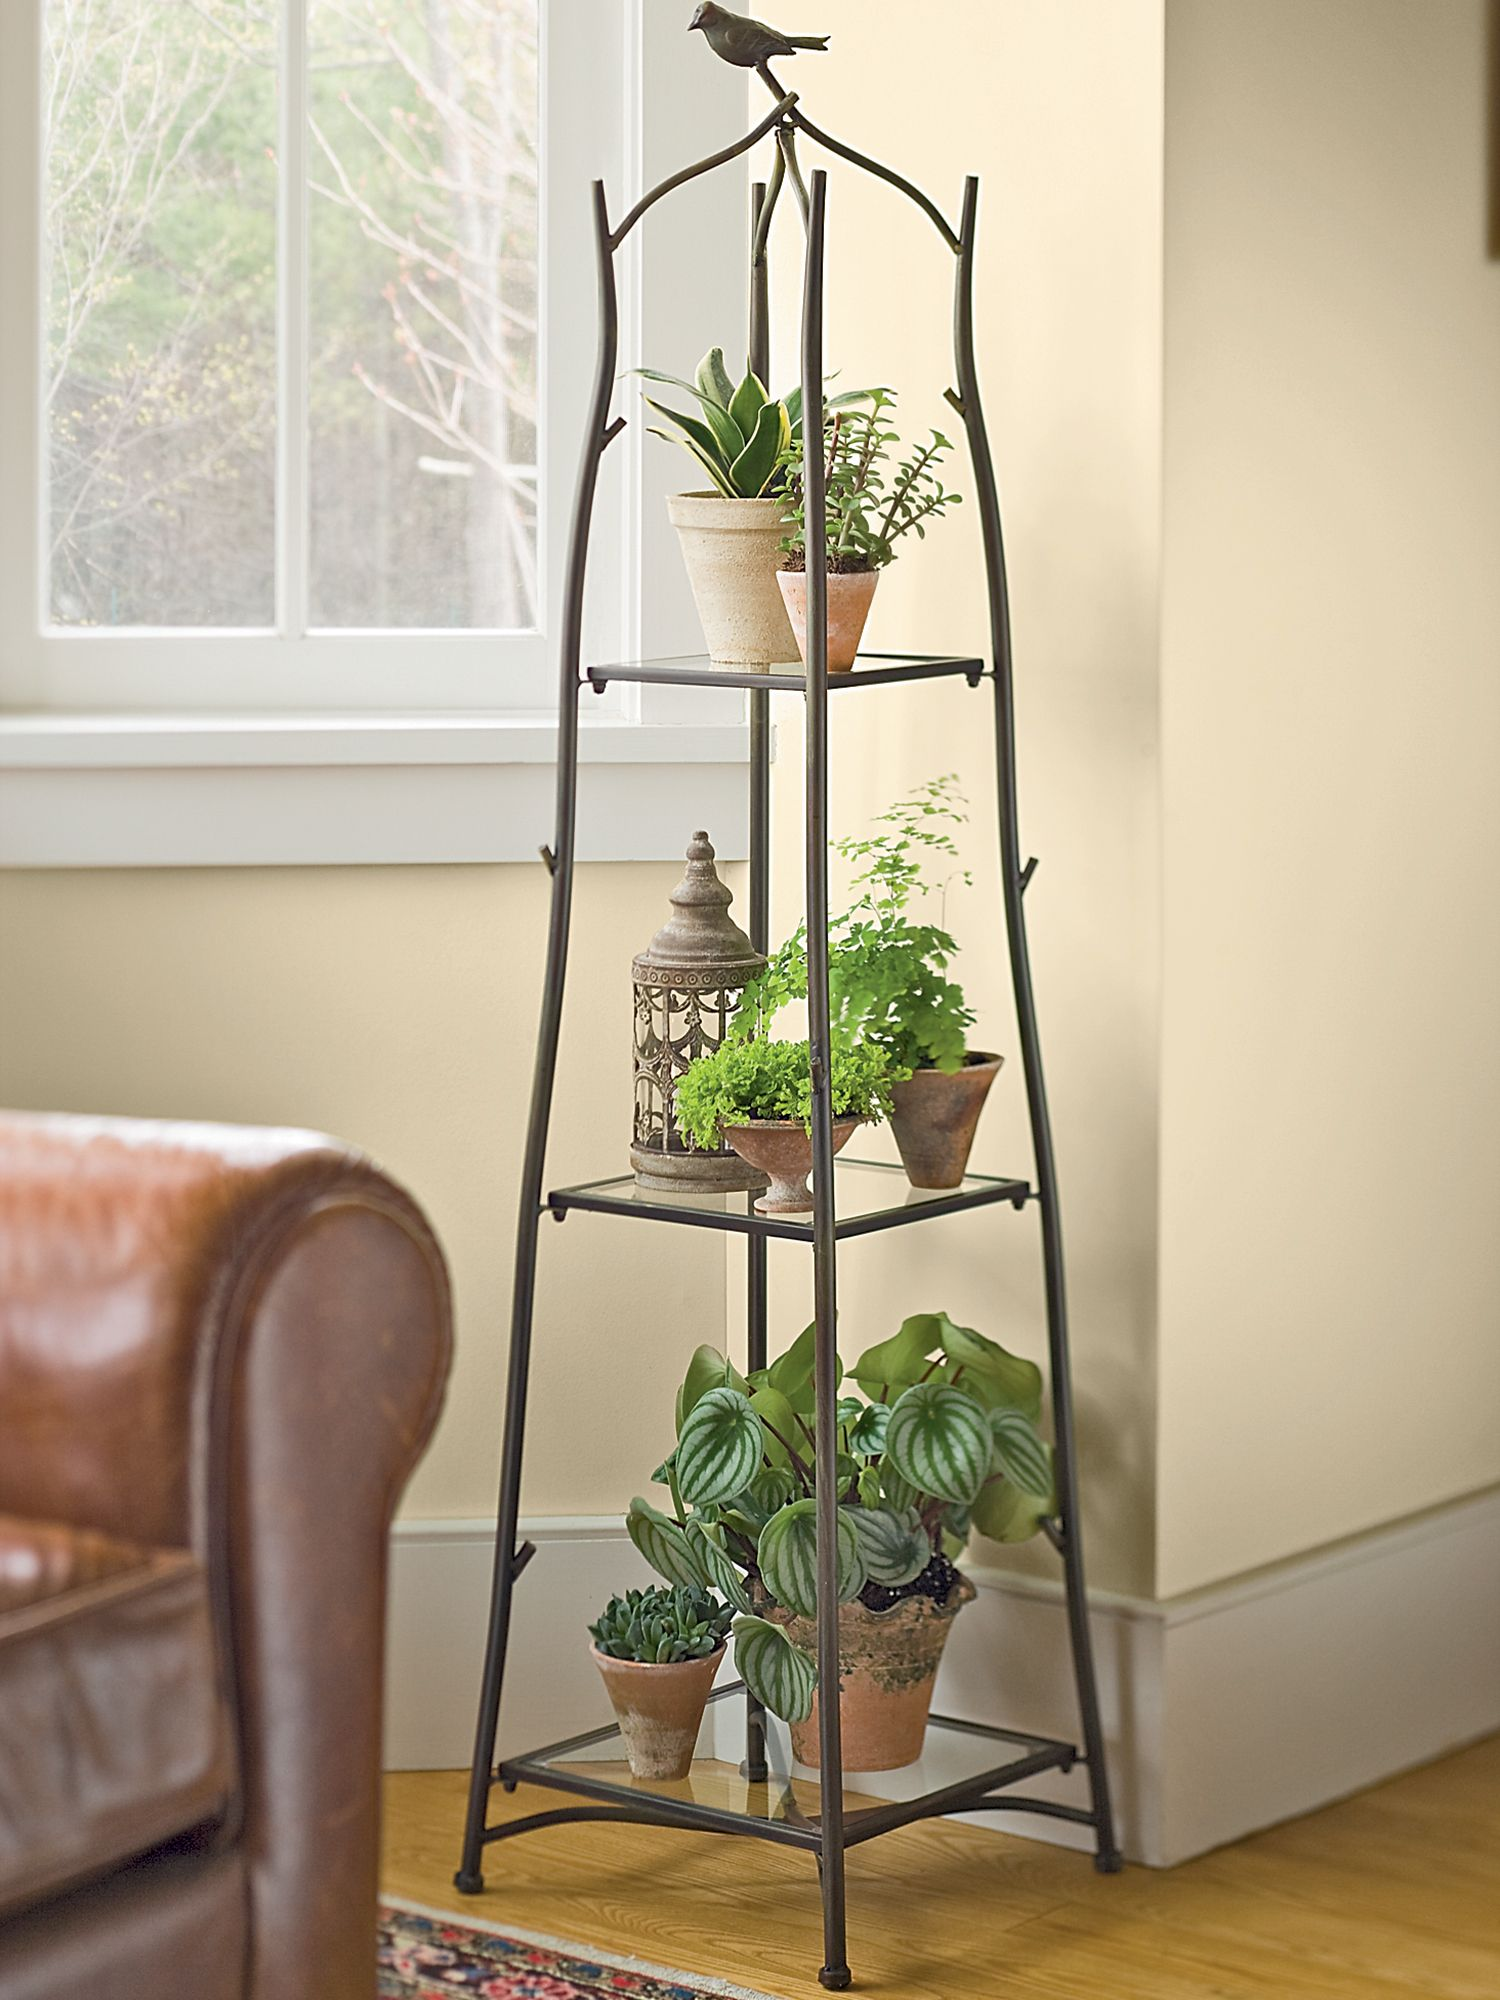 This Indoor Plant Stand Instead Of The Antique Bird Cage